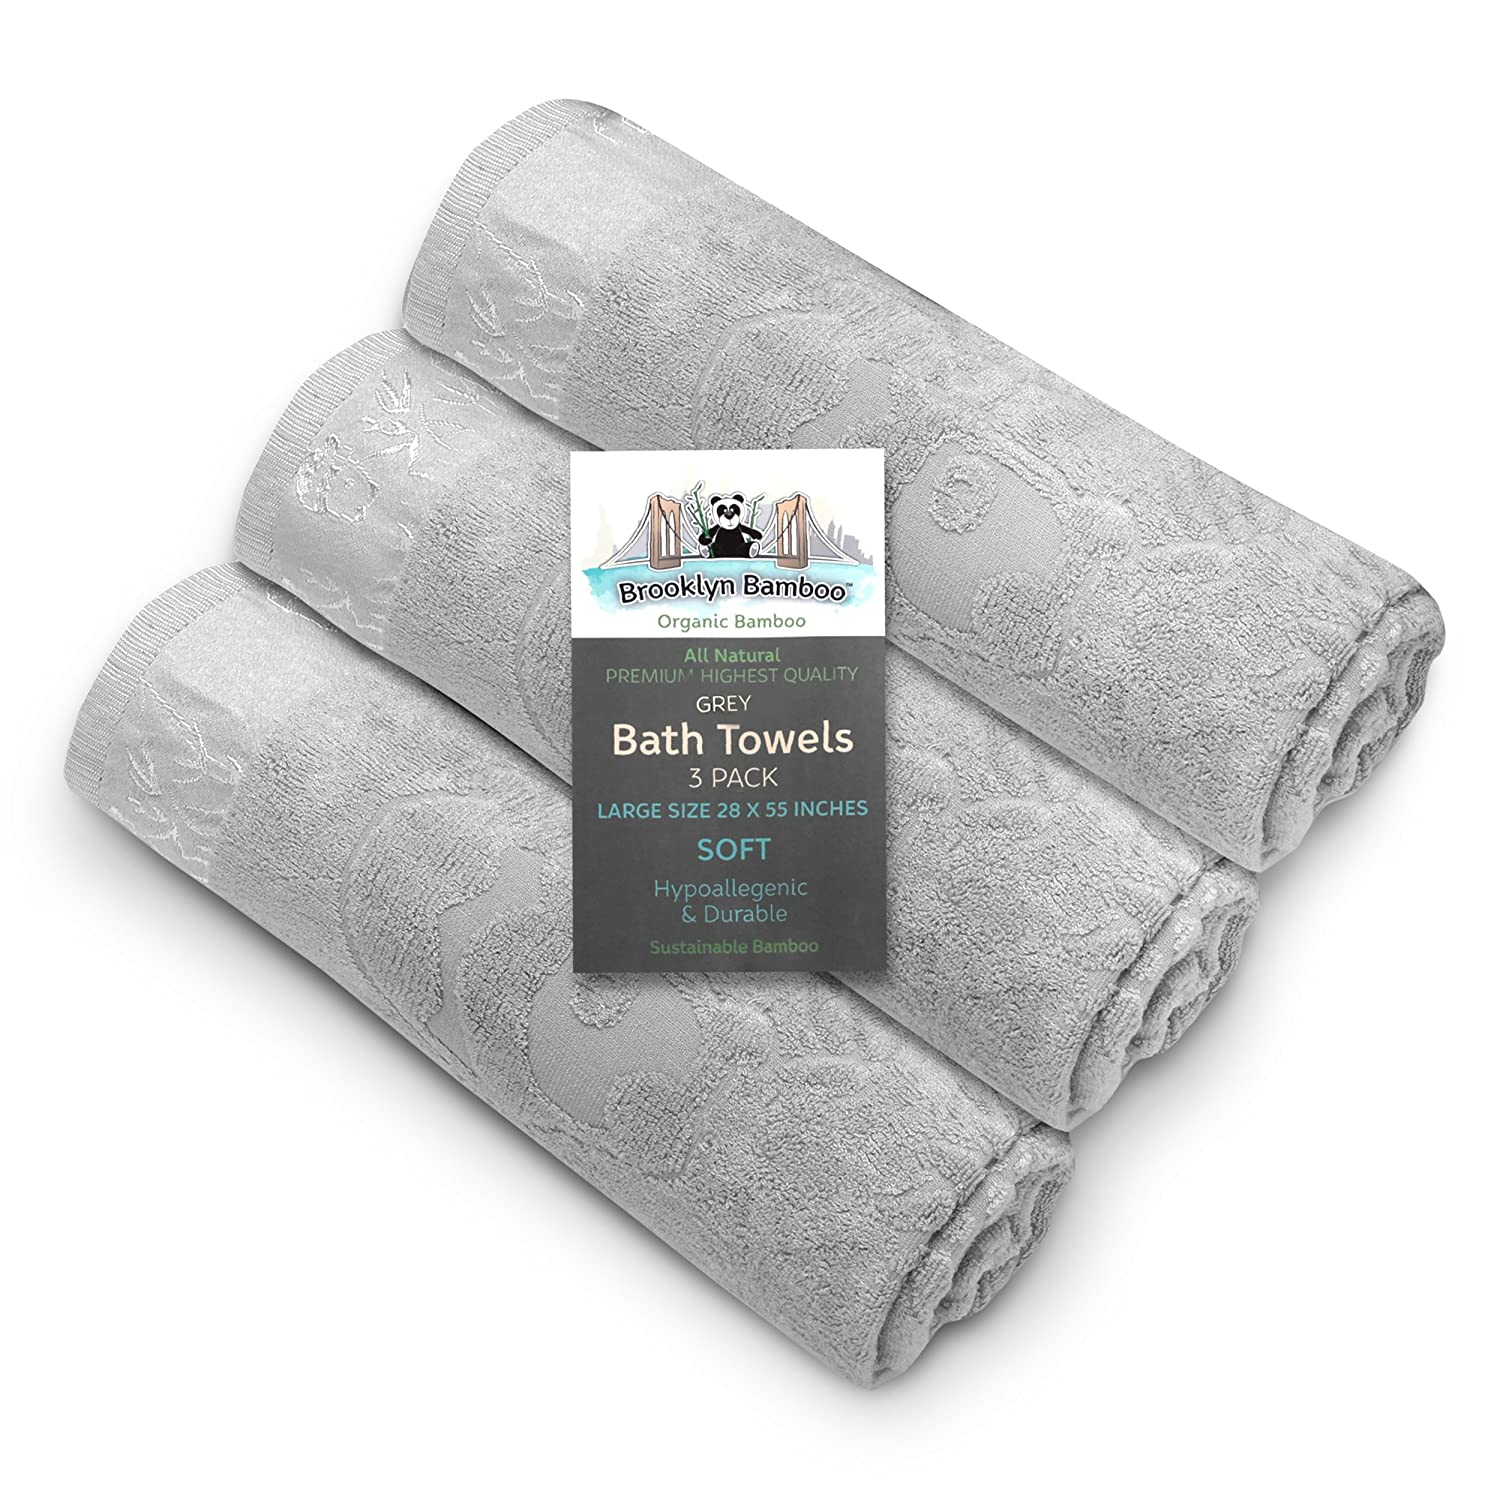 Brooklyn Bamboo Bath Towels | Beautiful & Unique 3 Piece Set | Extremely Soft & Absorbent | Hypoallergenic & Anti-Fungal | 27.6 x 55.1 Inches | Gray